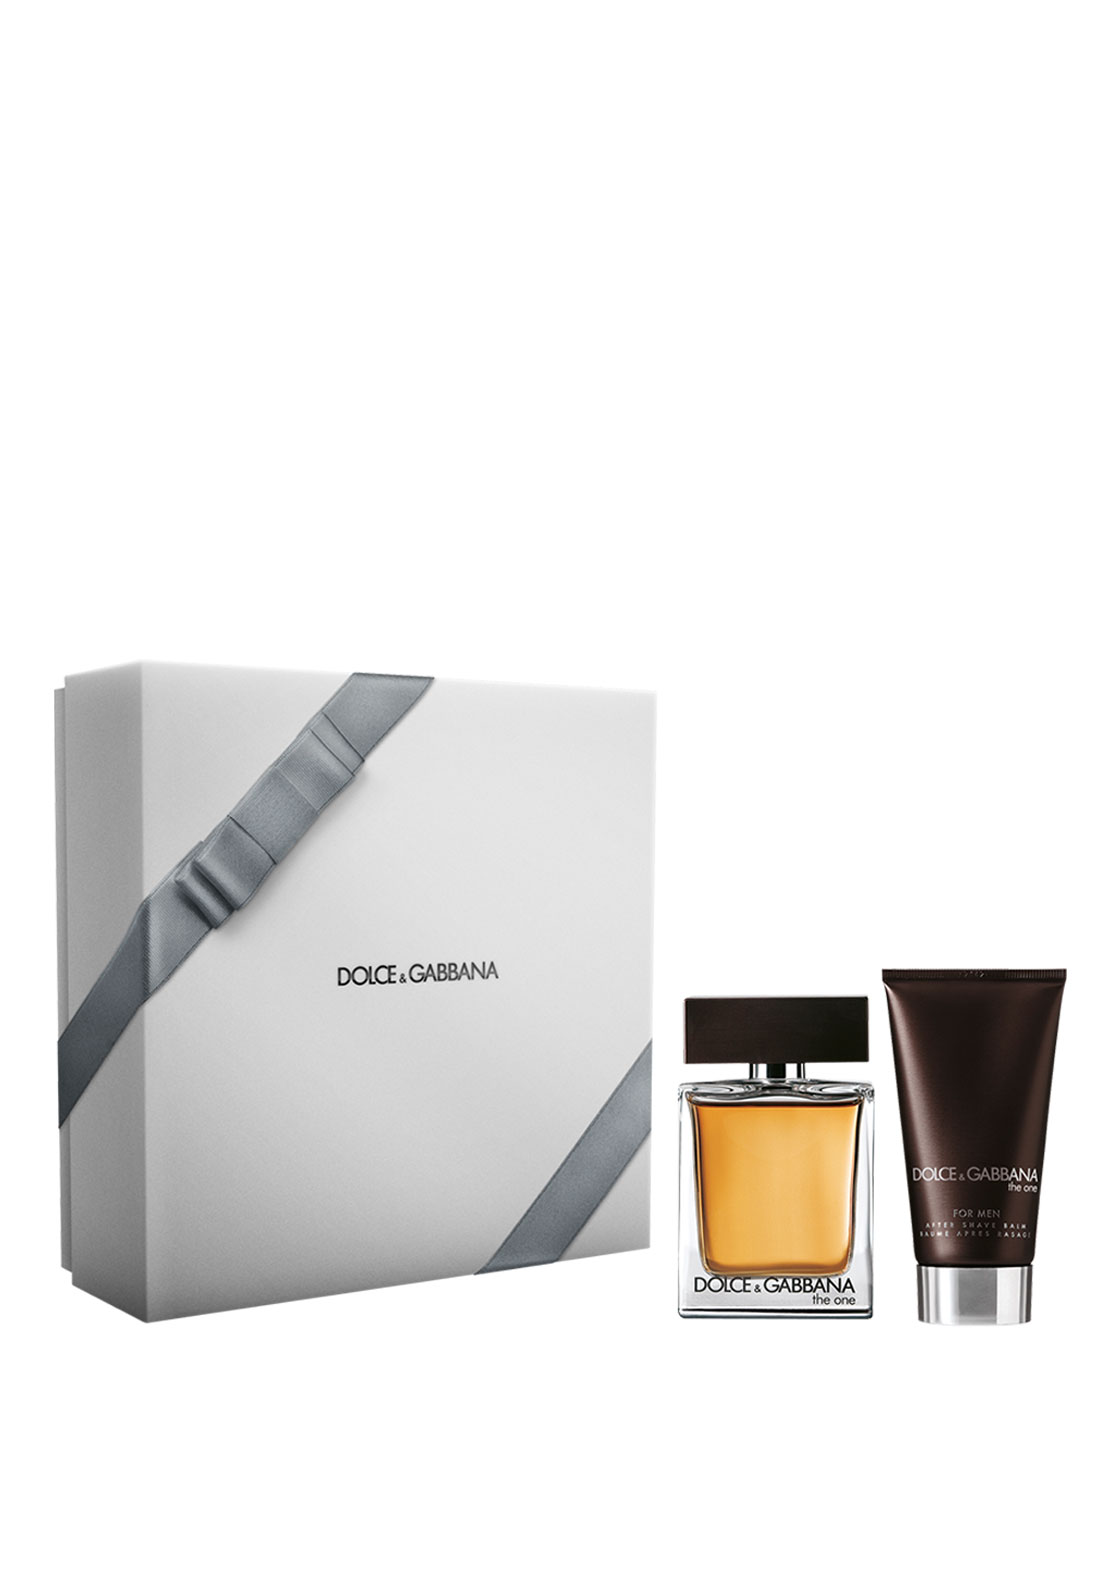 DOLCE & GABBANA the one Gift Set for Him